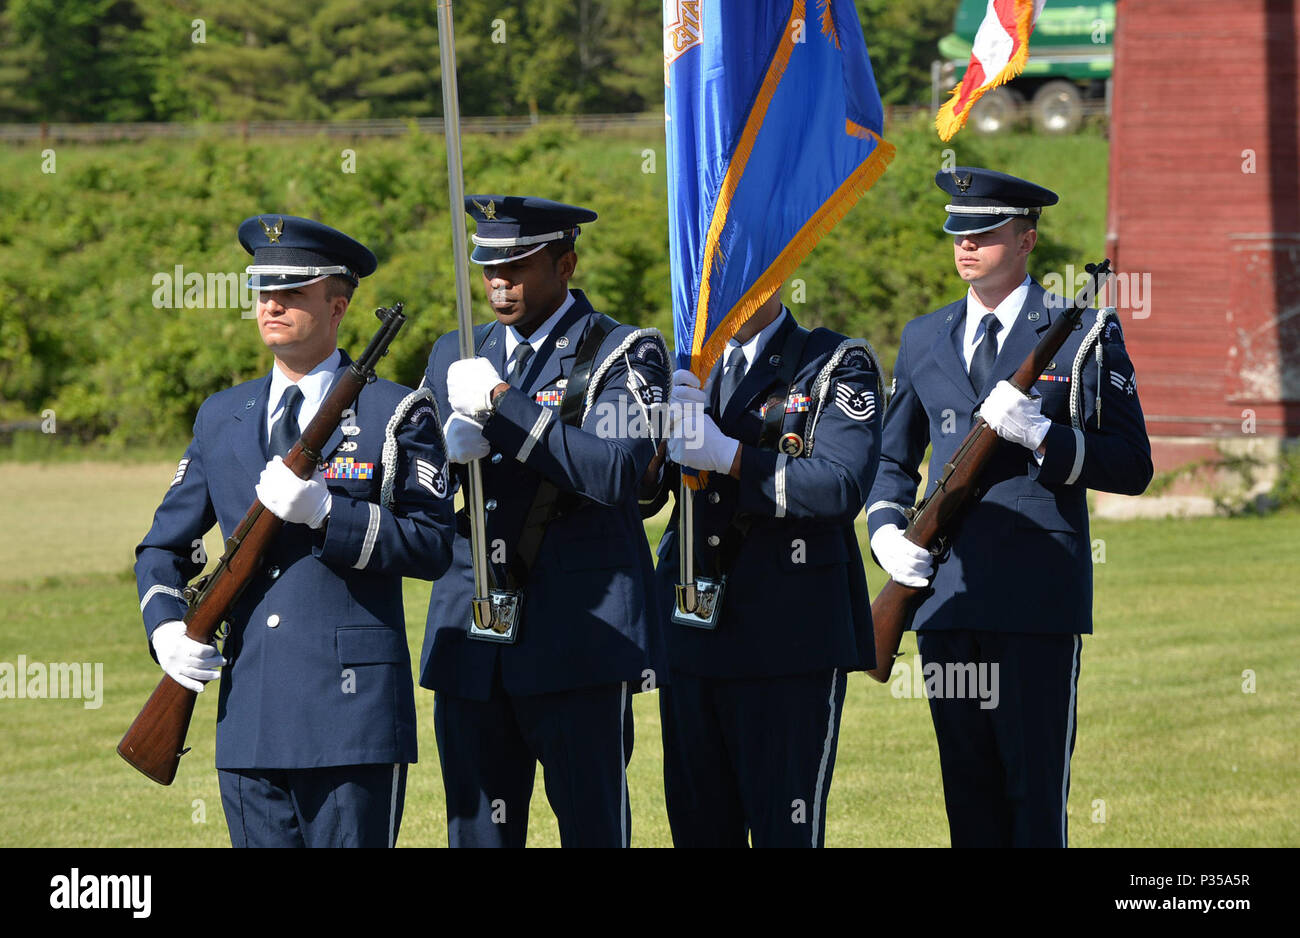 The New York Air National Guard 106th Rescue Wing honor guard prepare to post the colors at the 40th Memorial Anniversary of Jolly 85 at VFW Post 1505, Keeseville, N.Y., June 13, 2018. On June 13, 1978, an HH-3E Jolly Green Giant Helicopter from the 102nd Aerospace Rescue and Recovery Group now the 106th Rescue Wing in West Hampton Beach N.Y., was returning to base after training at Plattsburgh Air Force Base, N.Y. After encountering inclement weather, the seven members turned back to Plattsburgh, but with low visibility, the HH-3E hit the Trembleau Mountain just below its peak. (U.S. Air Nati - Stock Image